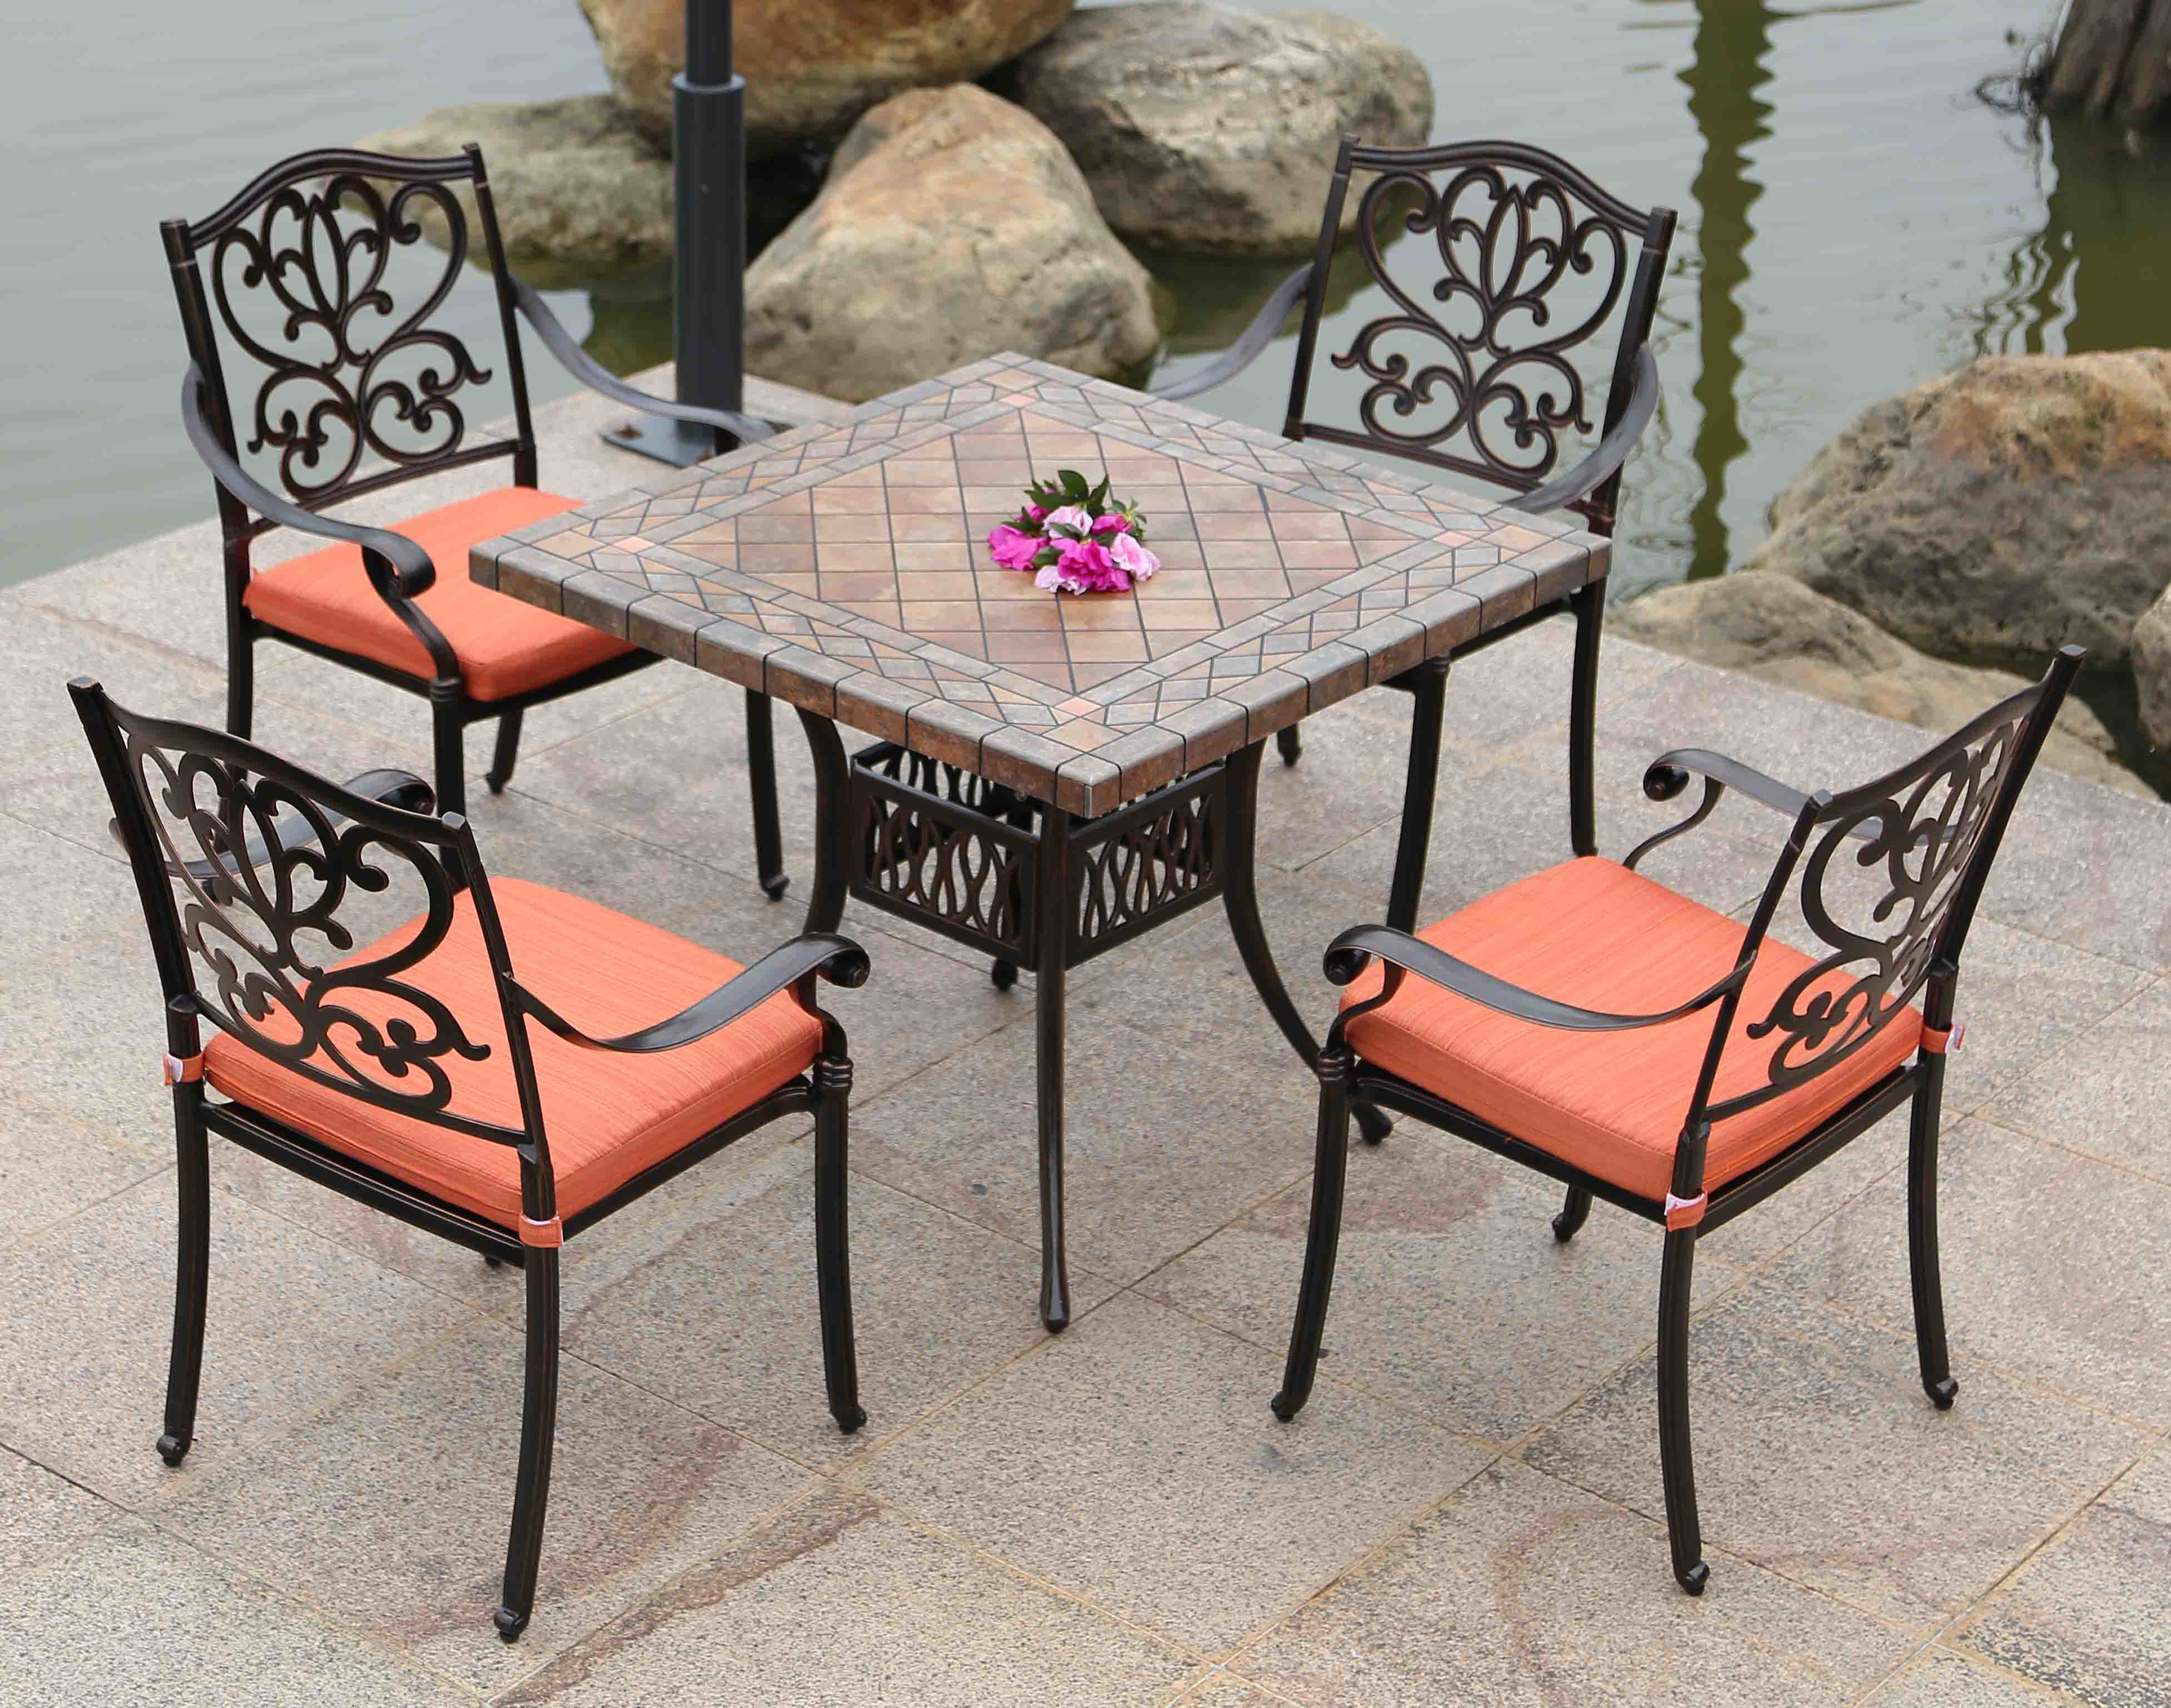 Best Choice Cast Aluminum Table and Chairs 35′′x35′′ Outdoor Garden Furniture Brown Finish Stone Top